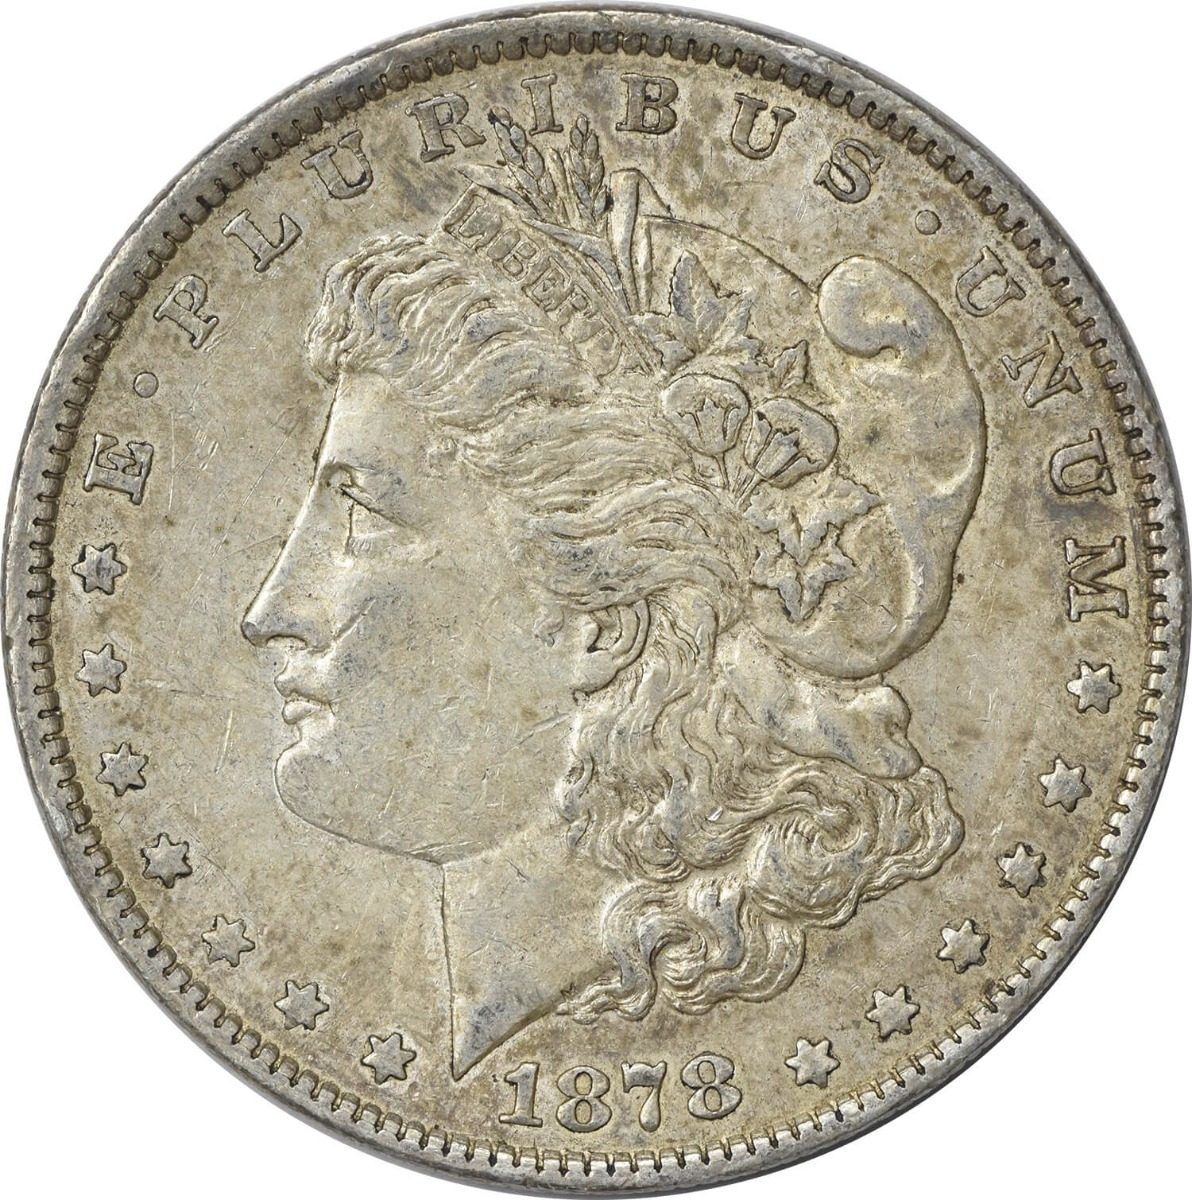 1878-P Morgan Silver Dollar, 7TF Reverse of 1879, AU, Uncertified